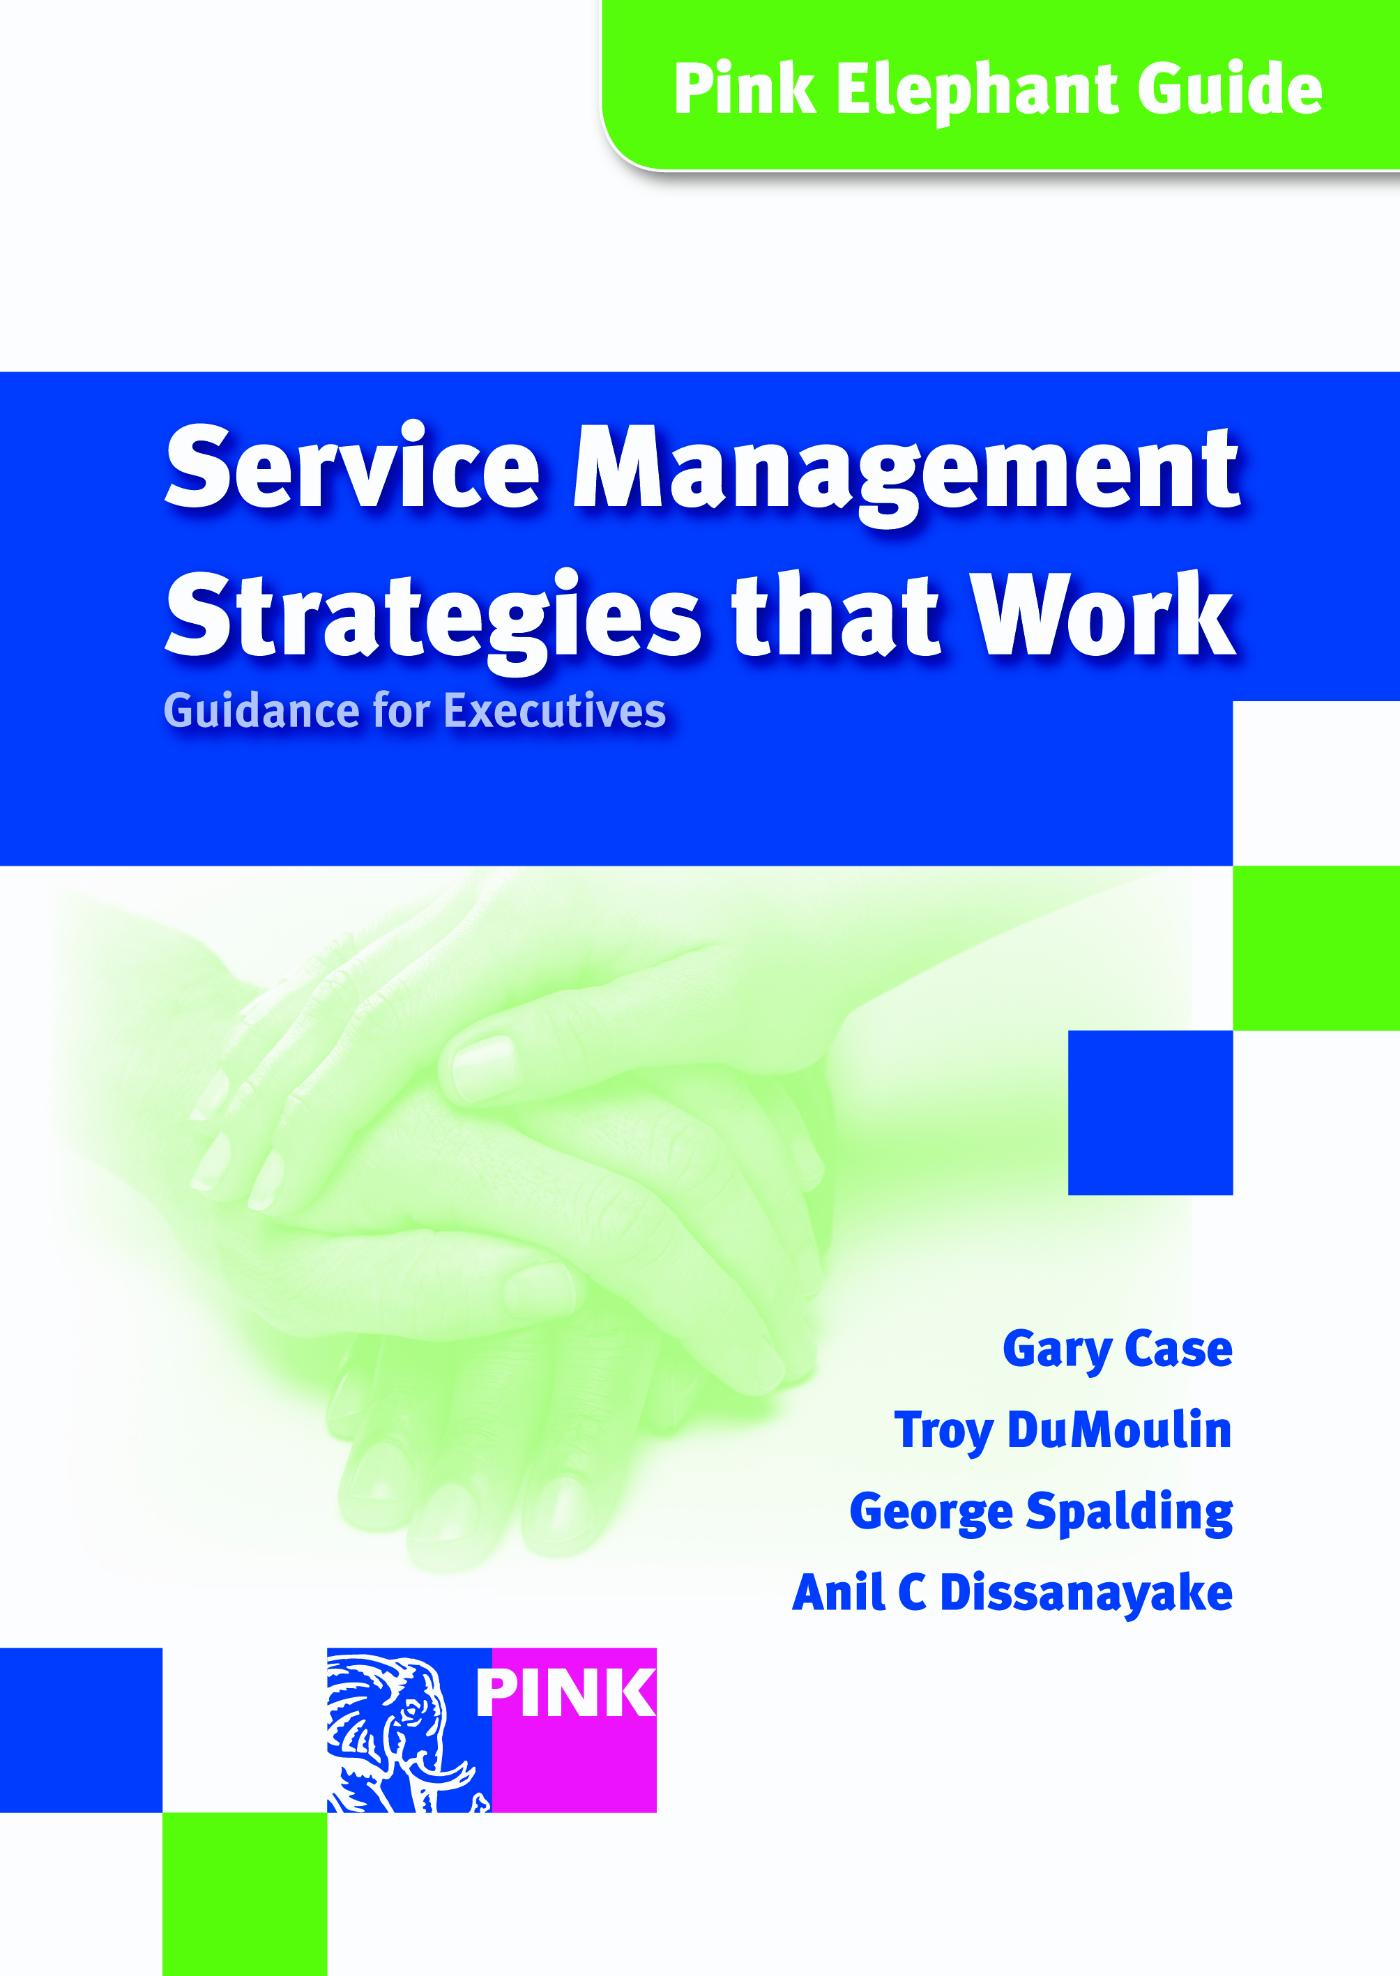 Service management strategies that work